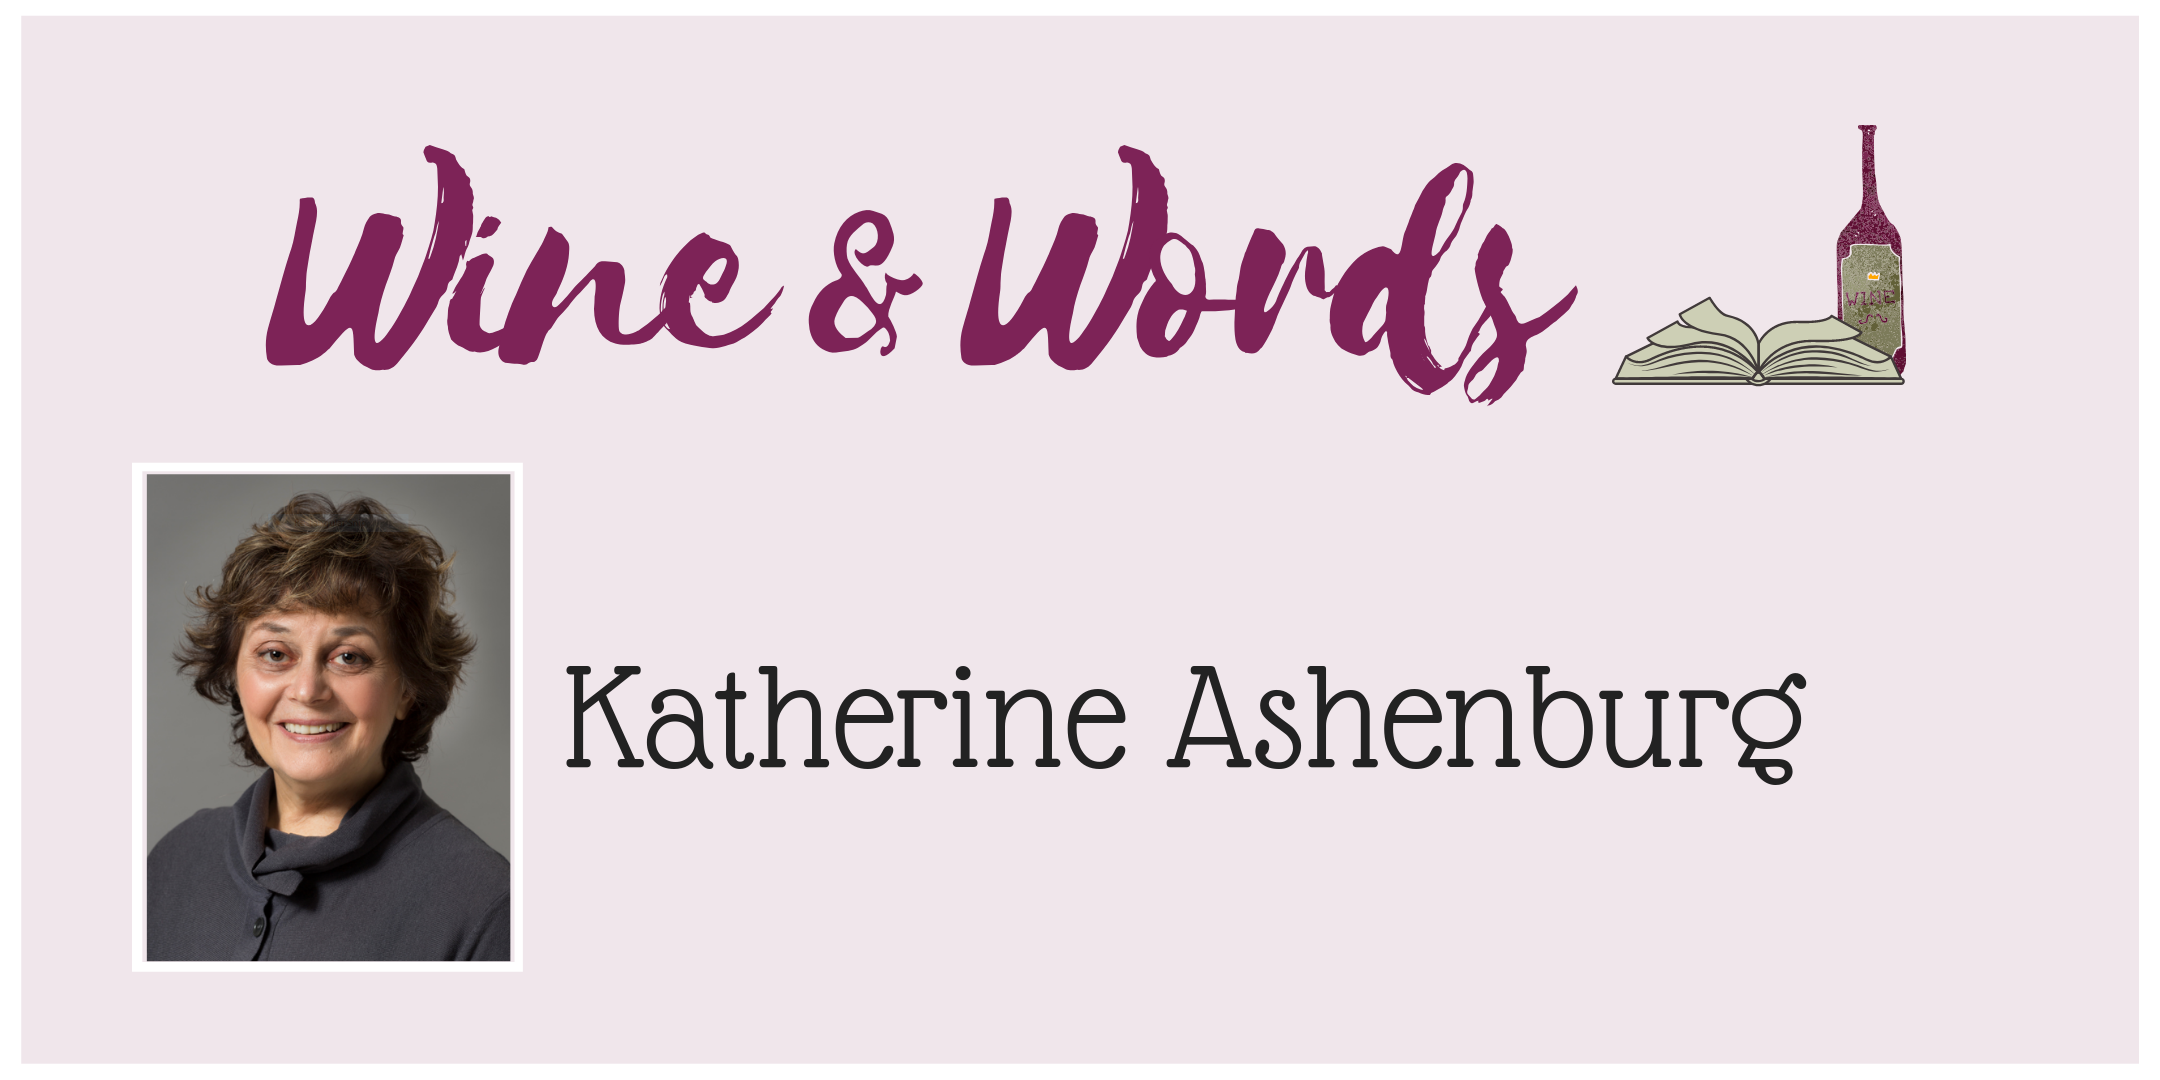 Wine & Words Katherine Ashenburg